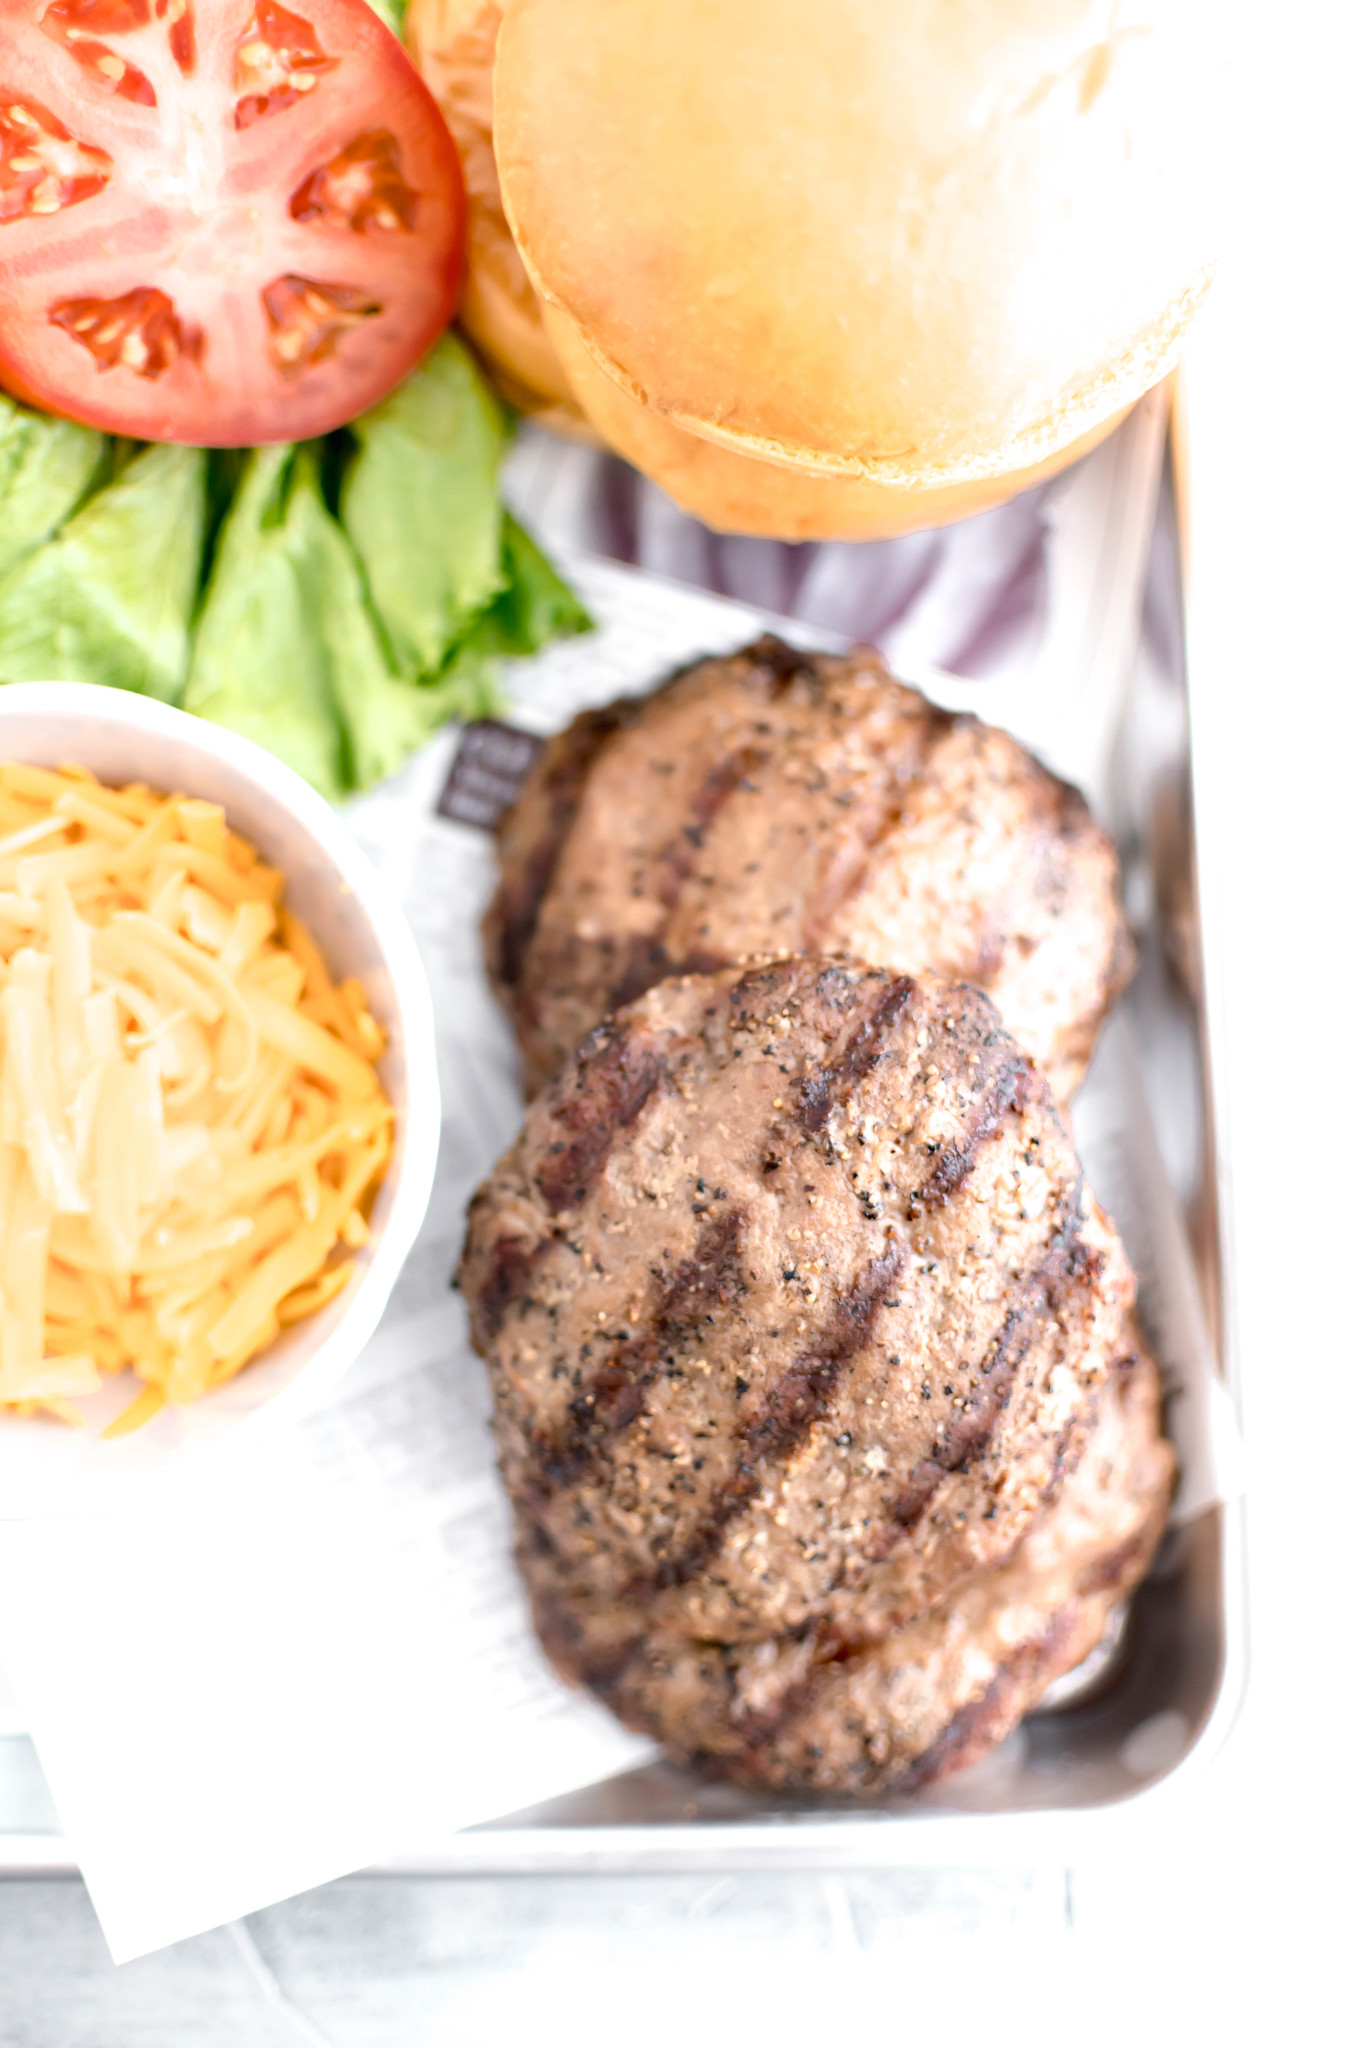 Grilled turkey burger patties on a tray with shredded cheese, lettuce, tomato and buns alongside it.